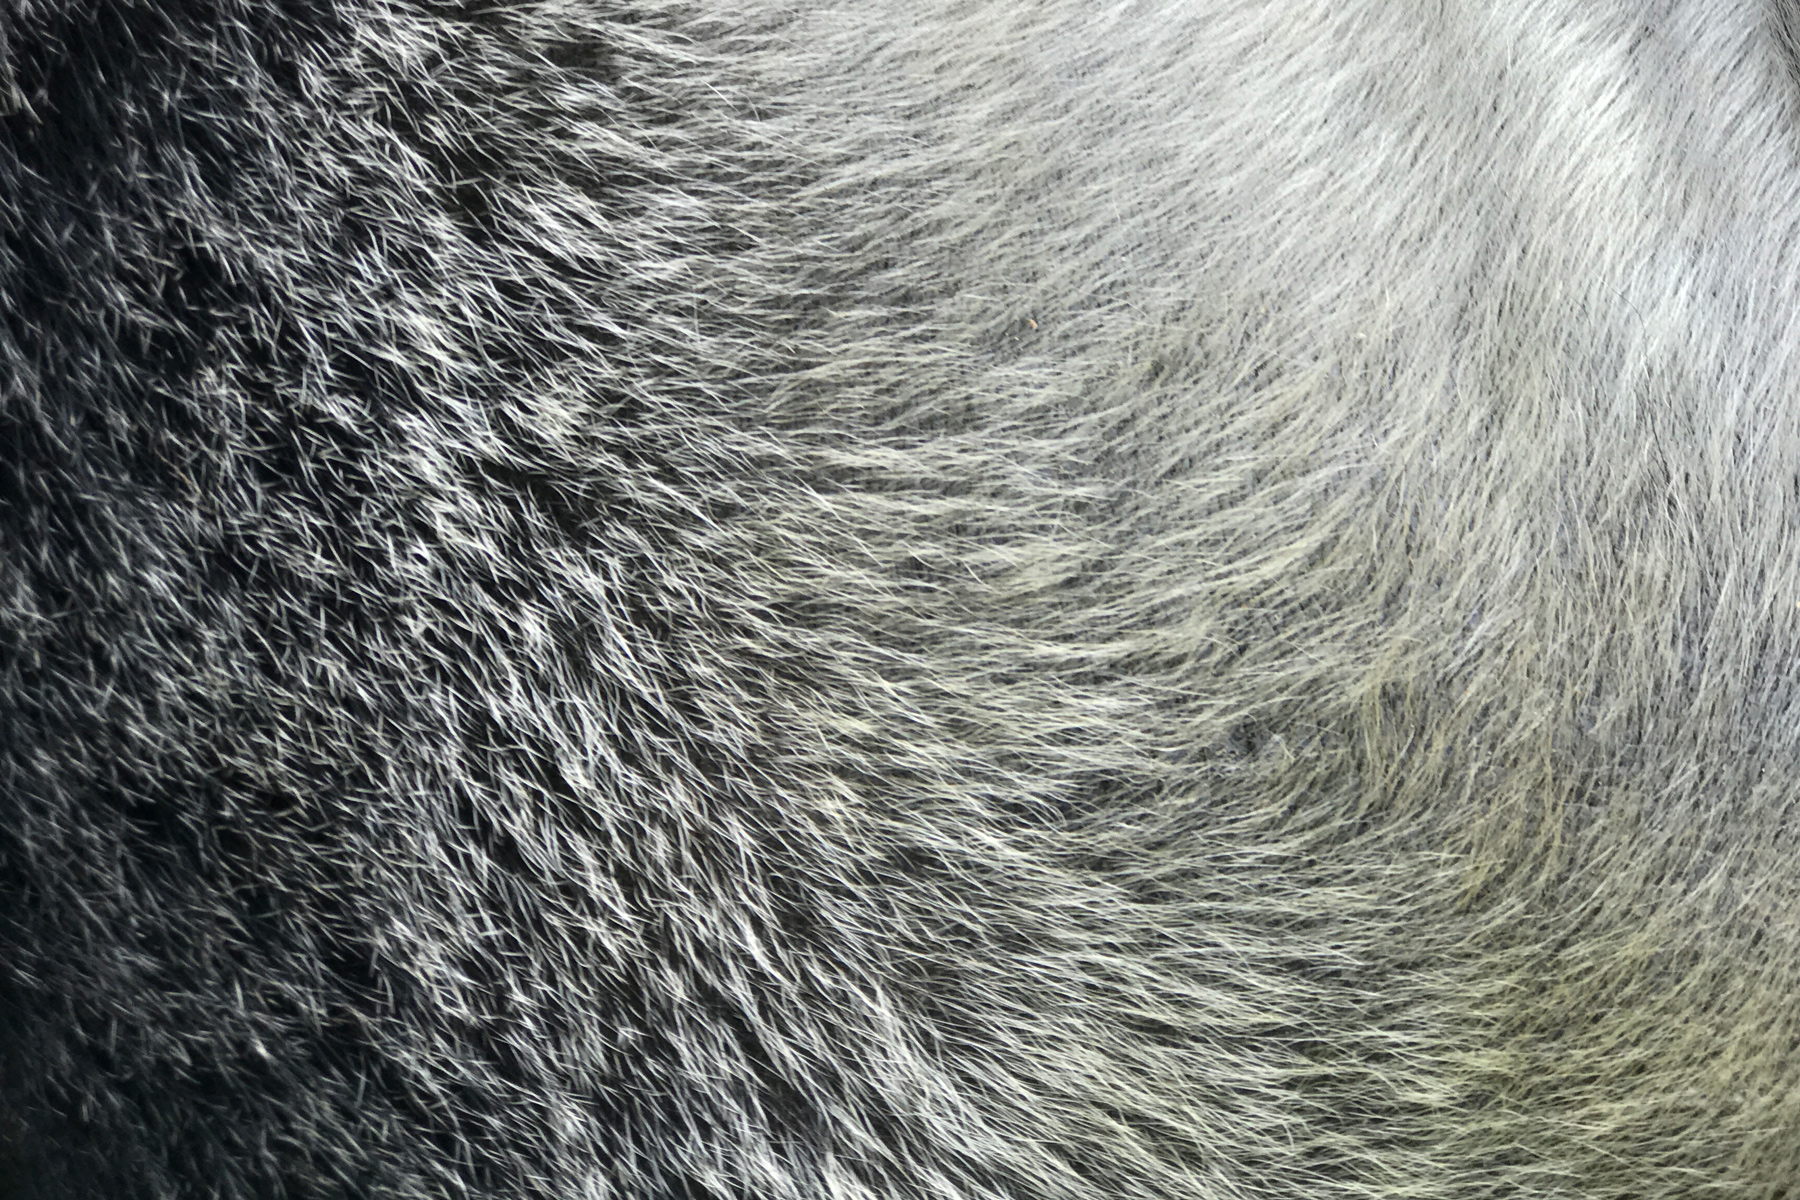 Silverbacks get their name because their black fur turns silver around age 12.Extreme close-up shot on iPhone 7 Plus w/ 2x optical zoom.